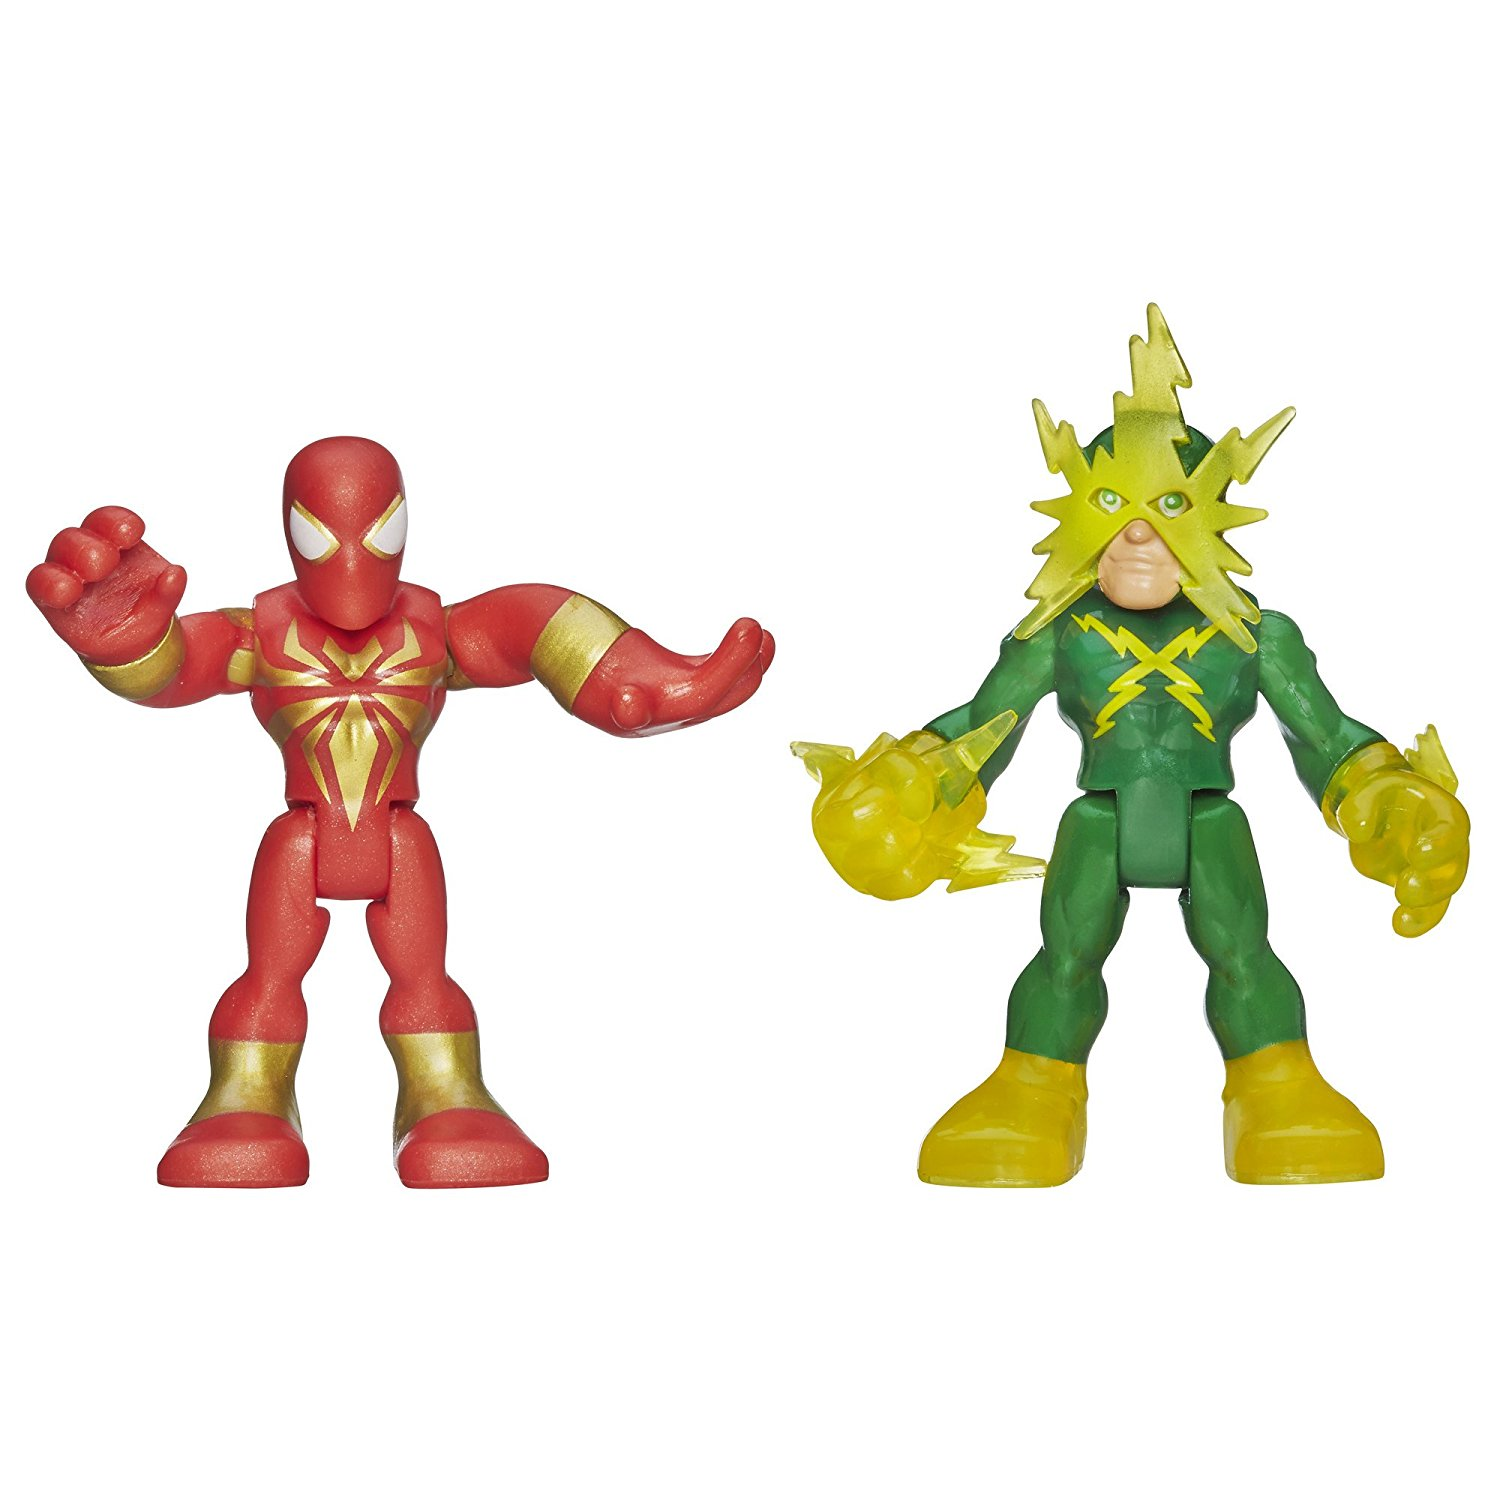 Heroes Marvel Super Hero Adventures Iron Spider-Man and Electro Figures, 2-pack includes 2 Marvel figures By... by